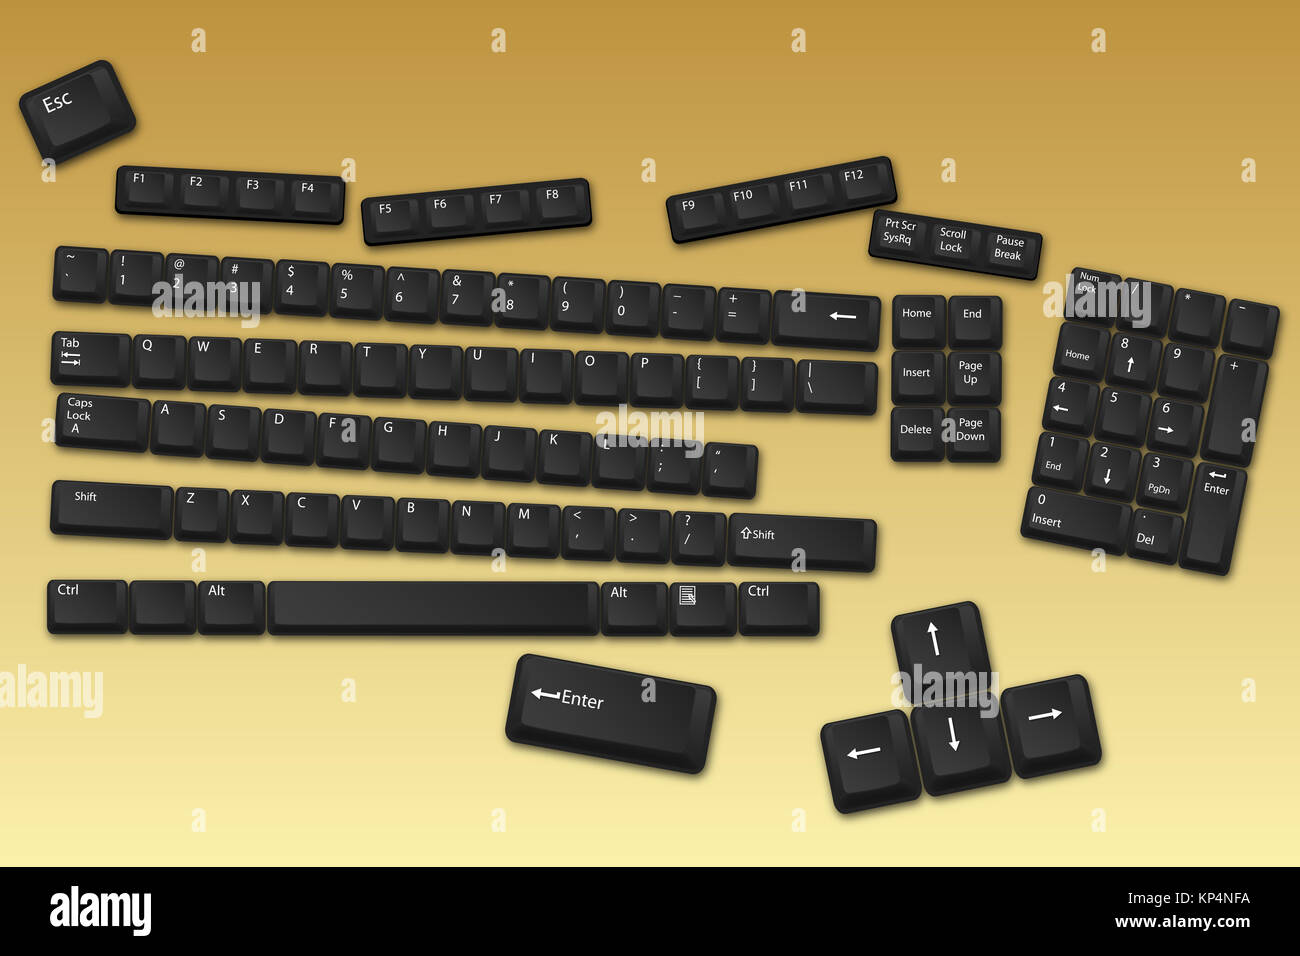 Images - Asterisk keyboard